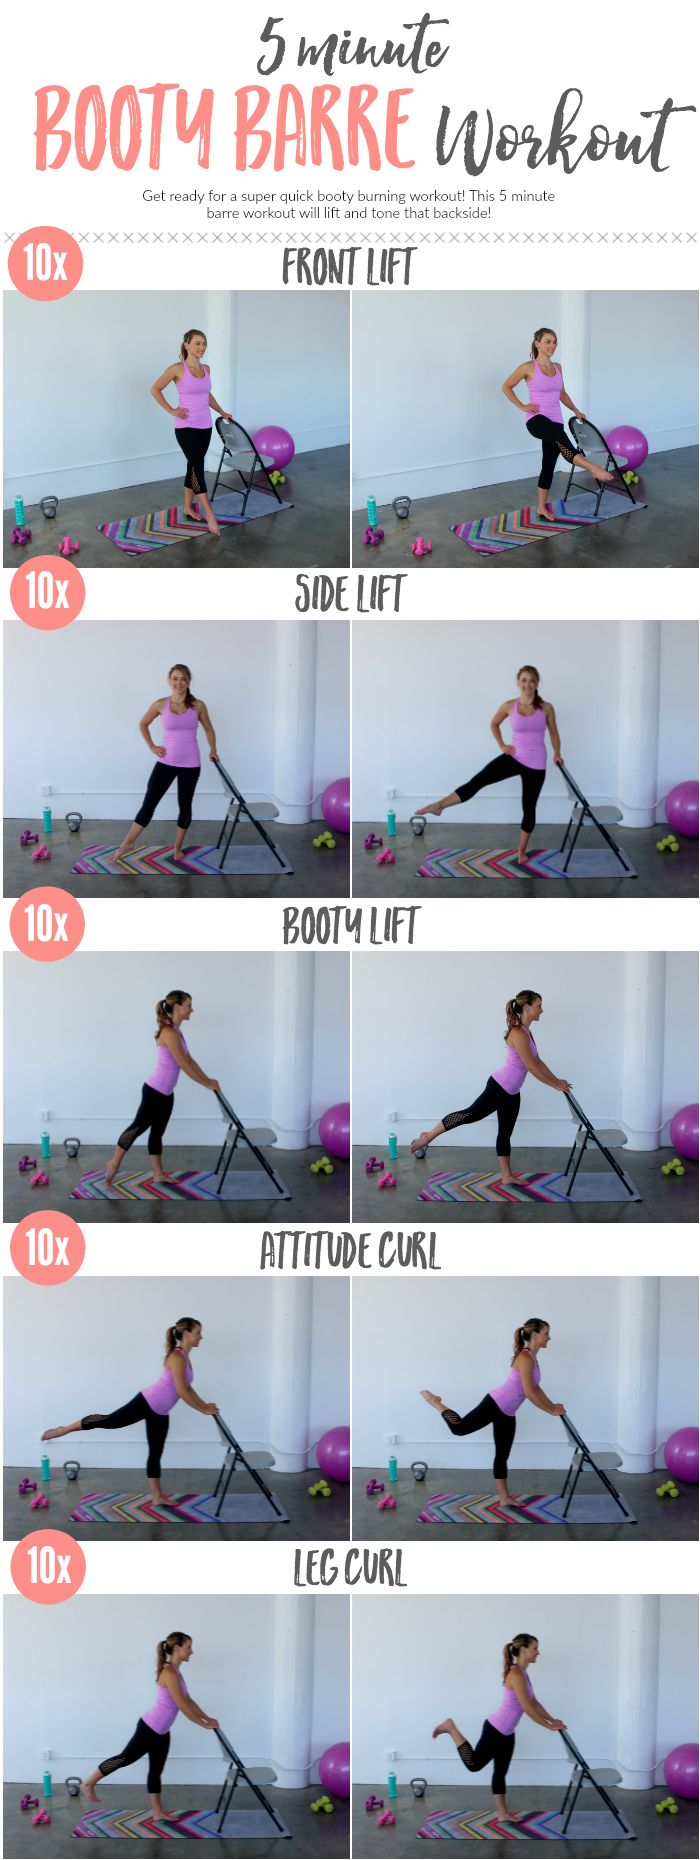 17088 best fitness images on pinterest exercise workouts work booty barre workout 1betcityfo Choice Image